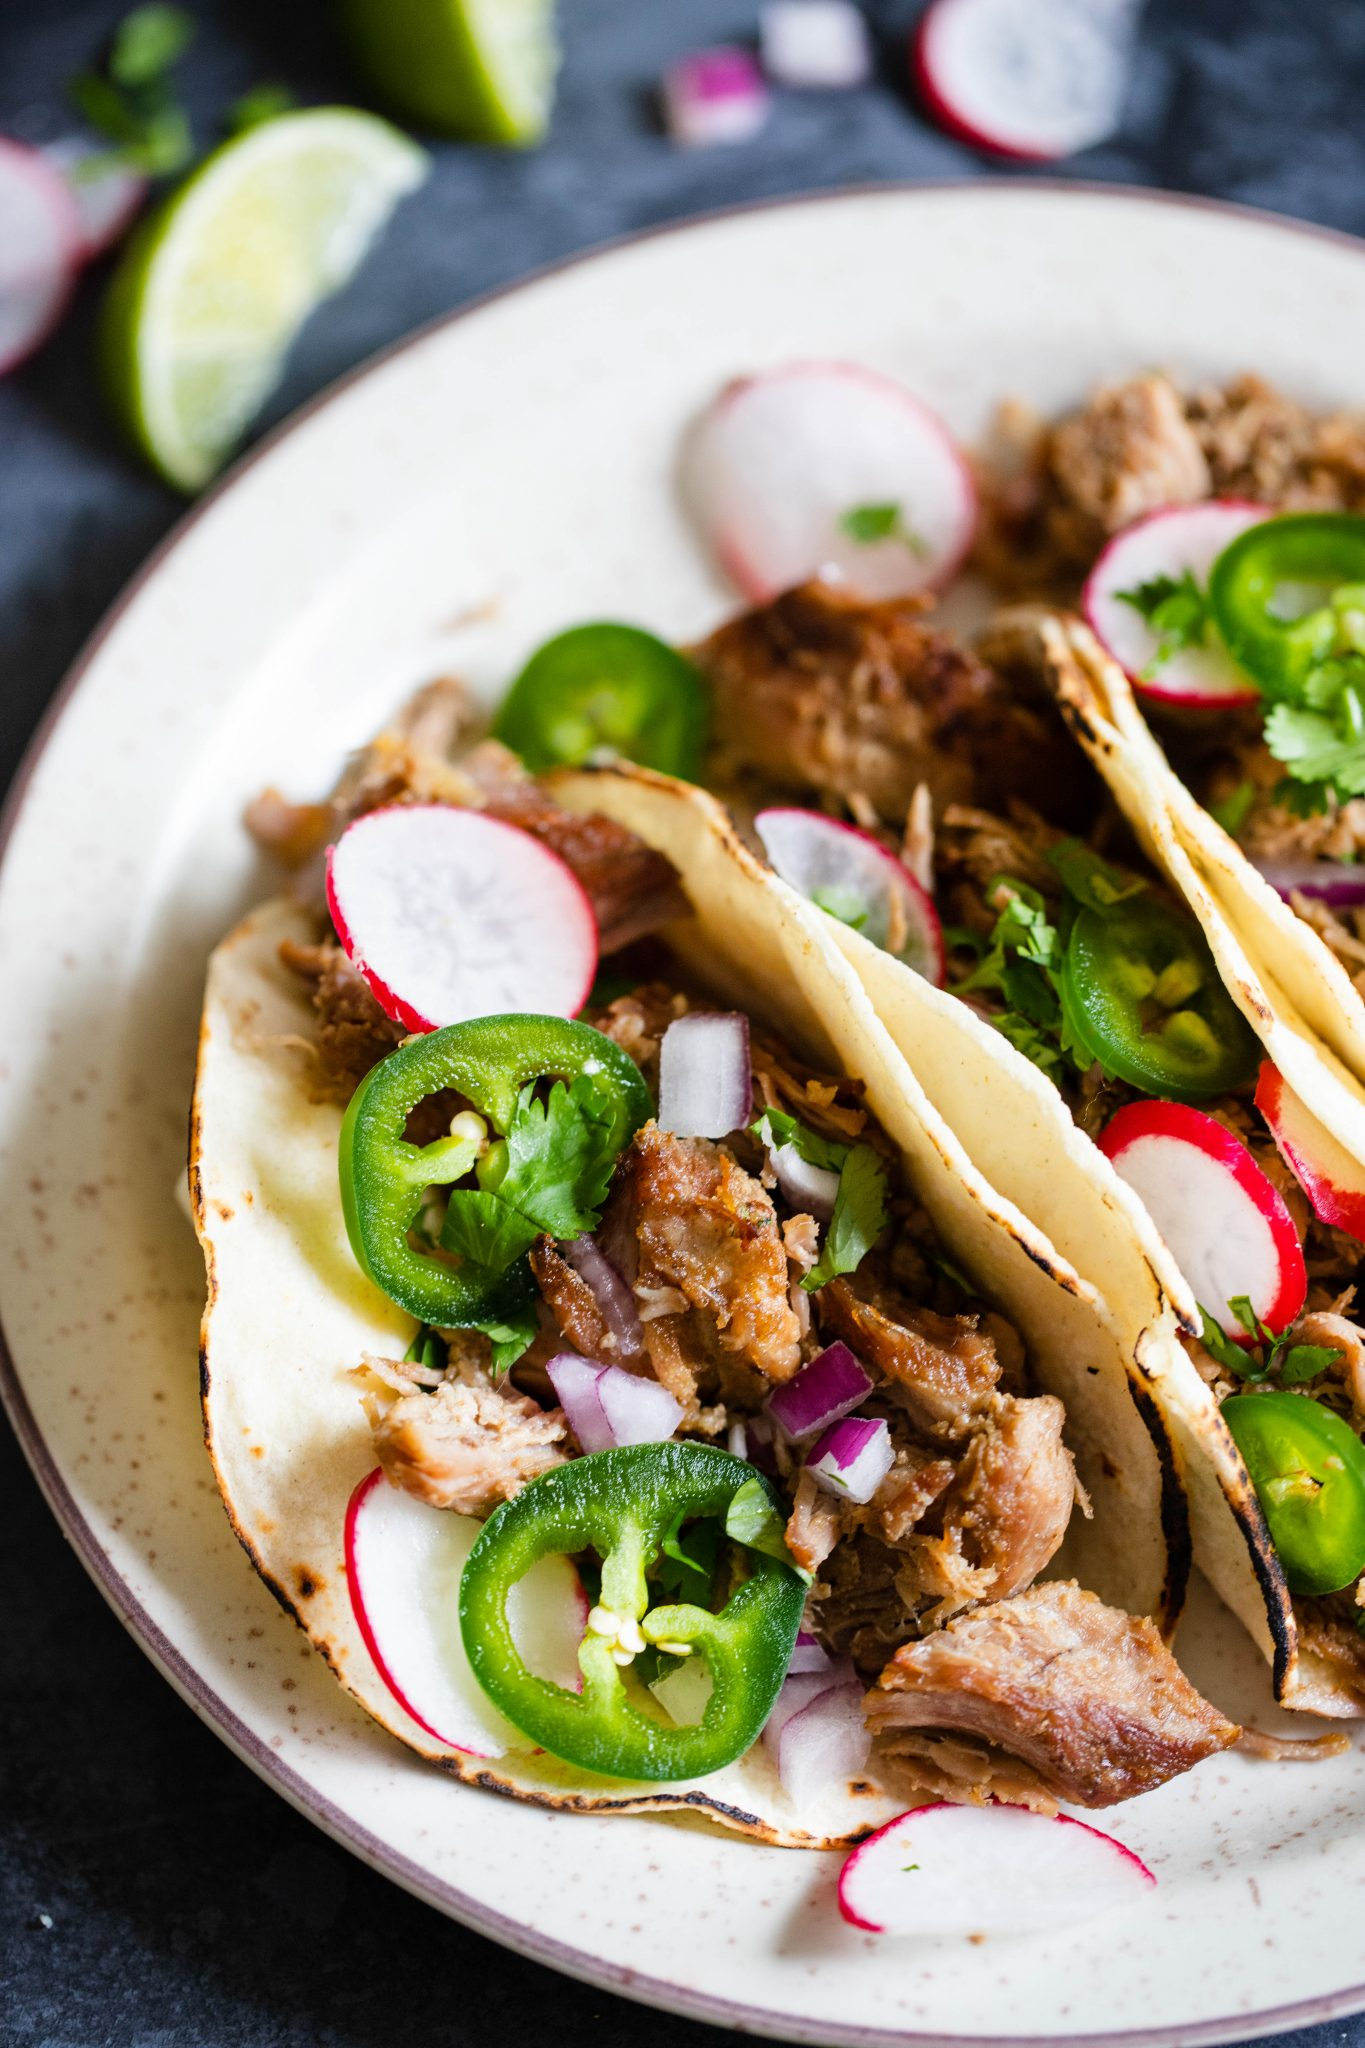 corn tortillas filled with Dutch oven carnitas and topped with radishes and jalapenos